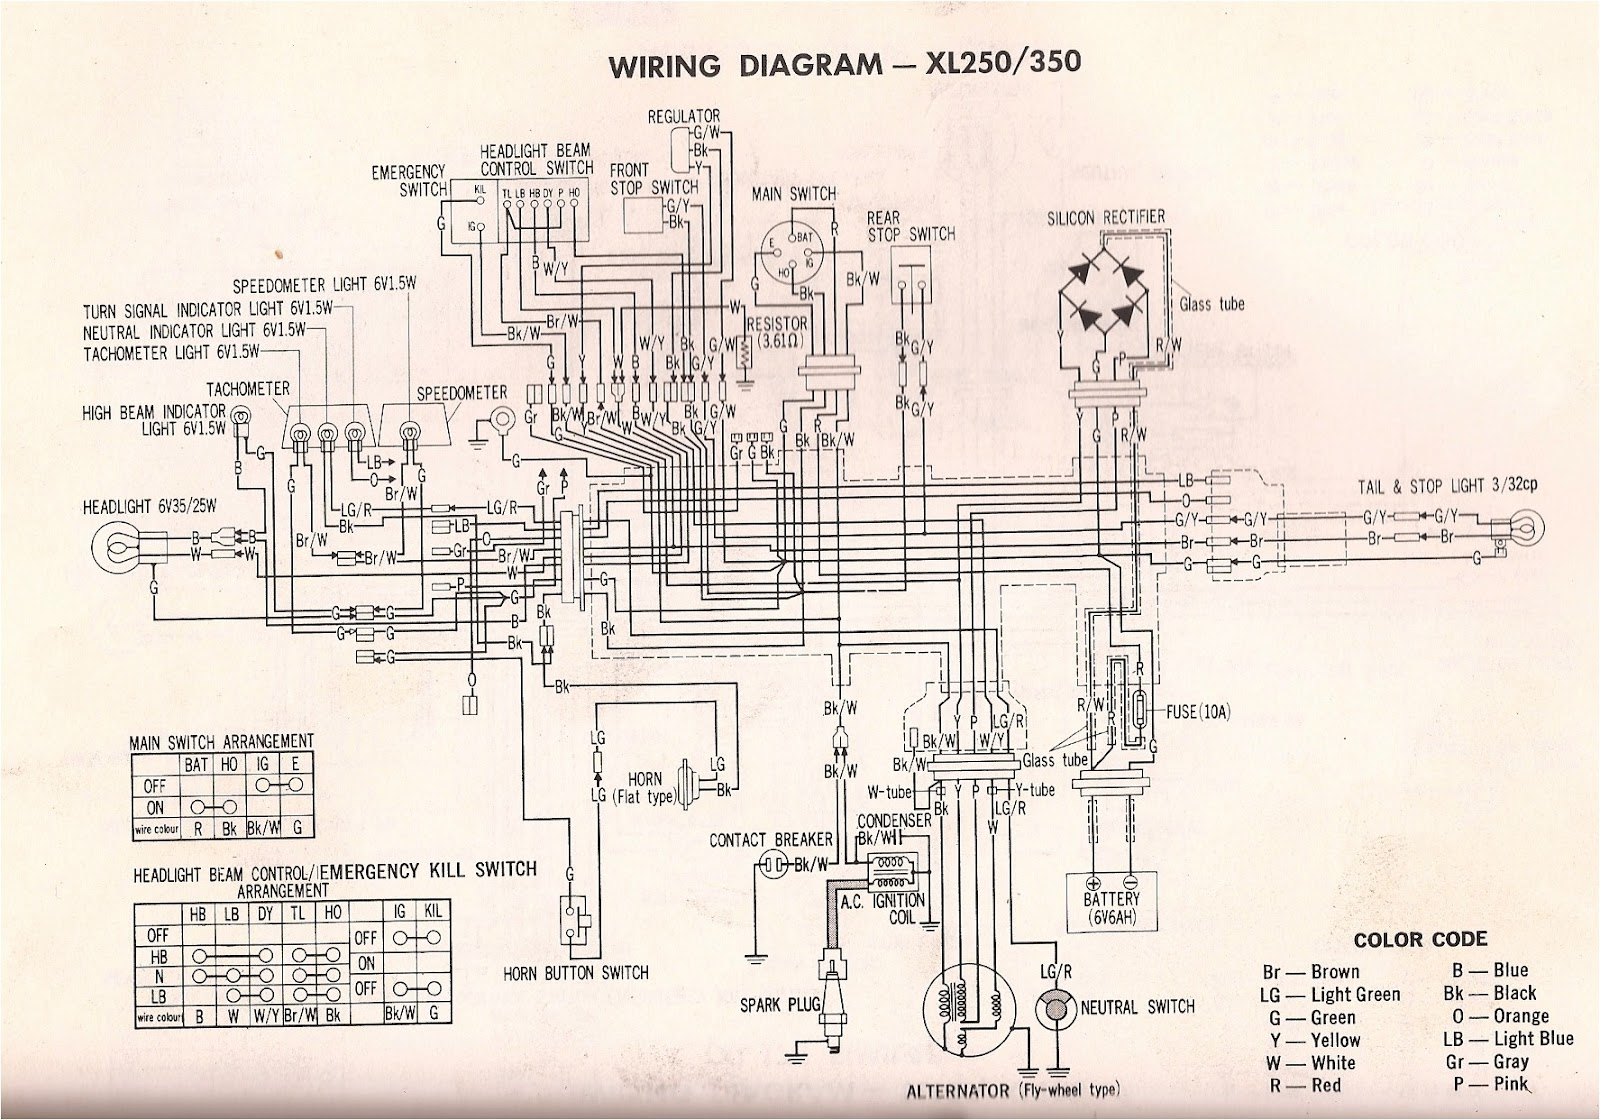 XL350+Wiring+diagram+S r4l xl350 wiring diagram (and xl250) 1975 honda ct90 wiring diagram at panicattacktreatment.co